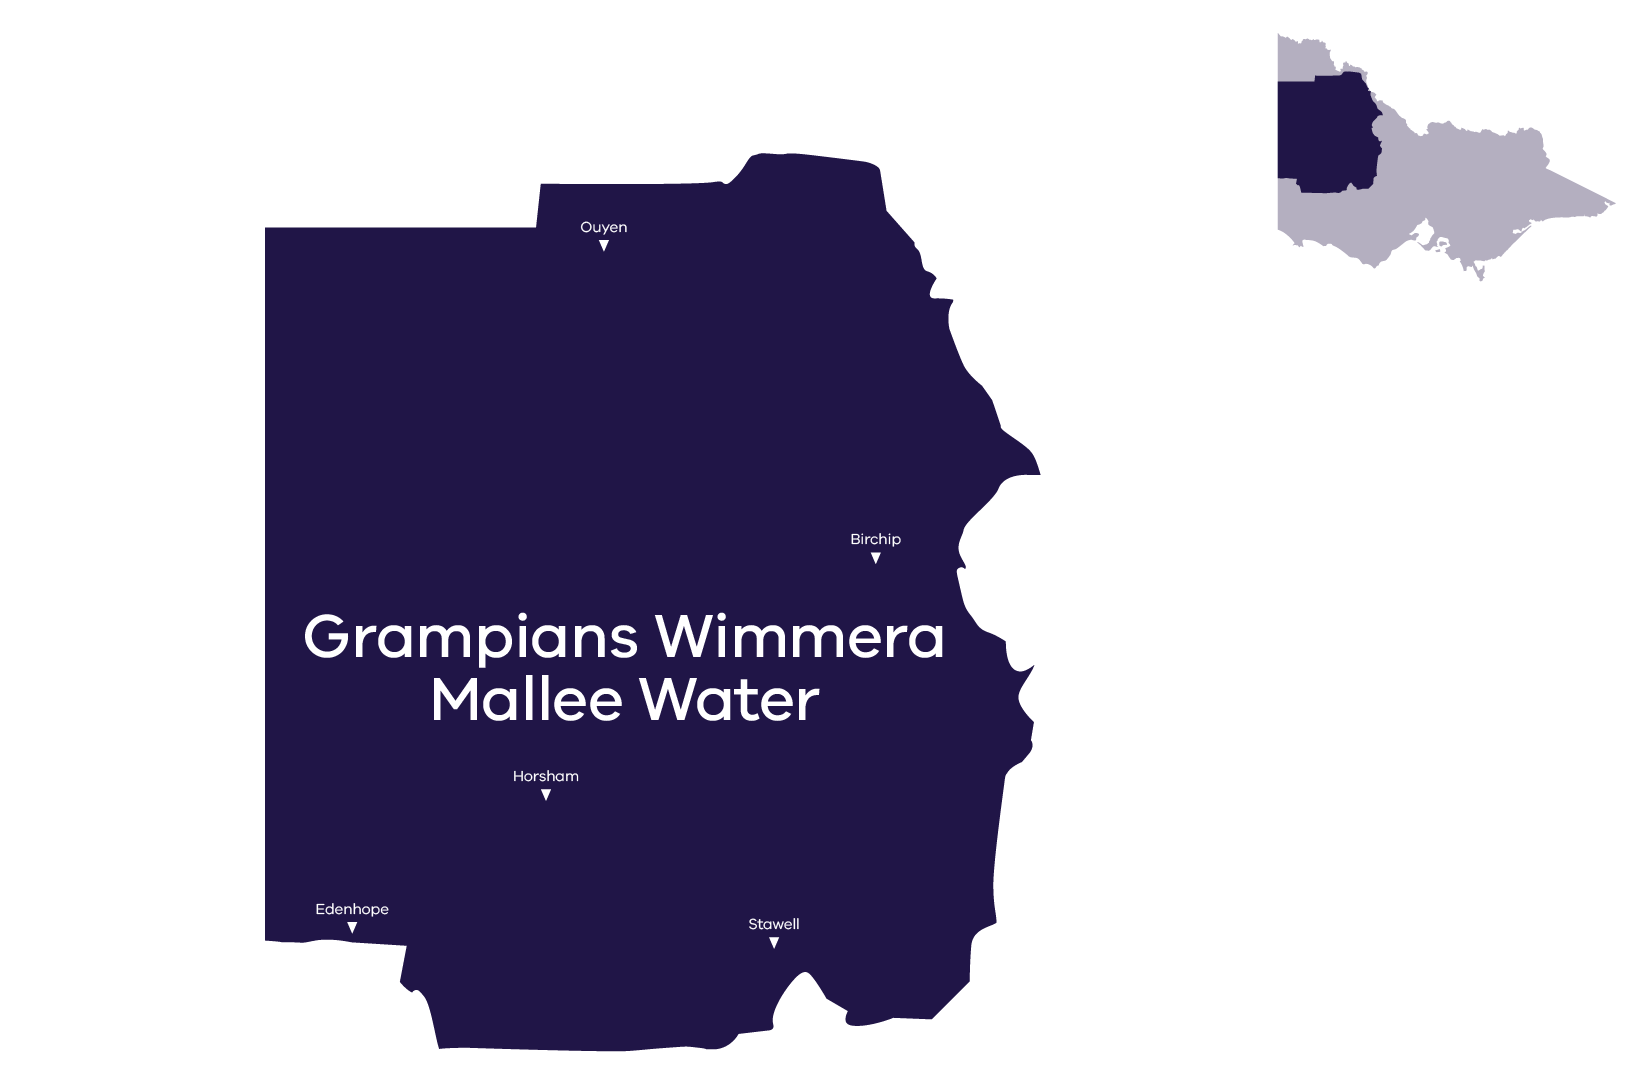 Stylised map of service area, call GWM Water for more information